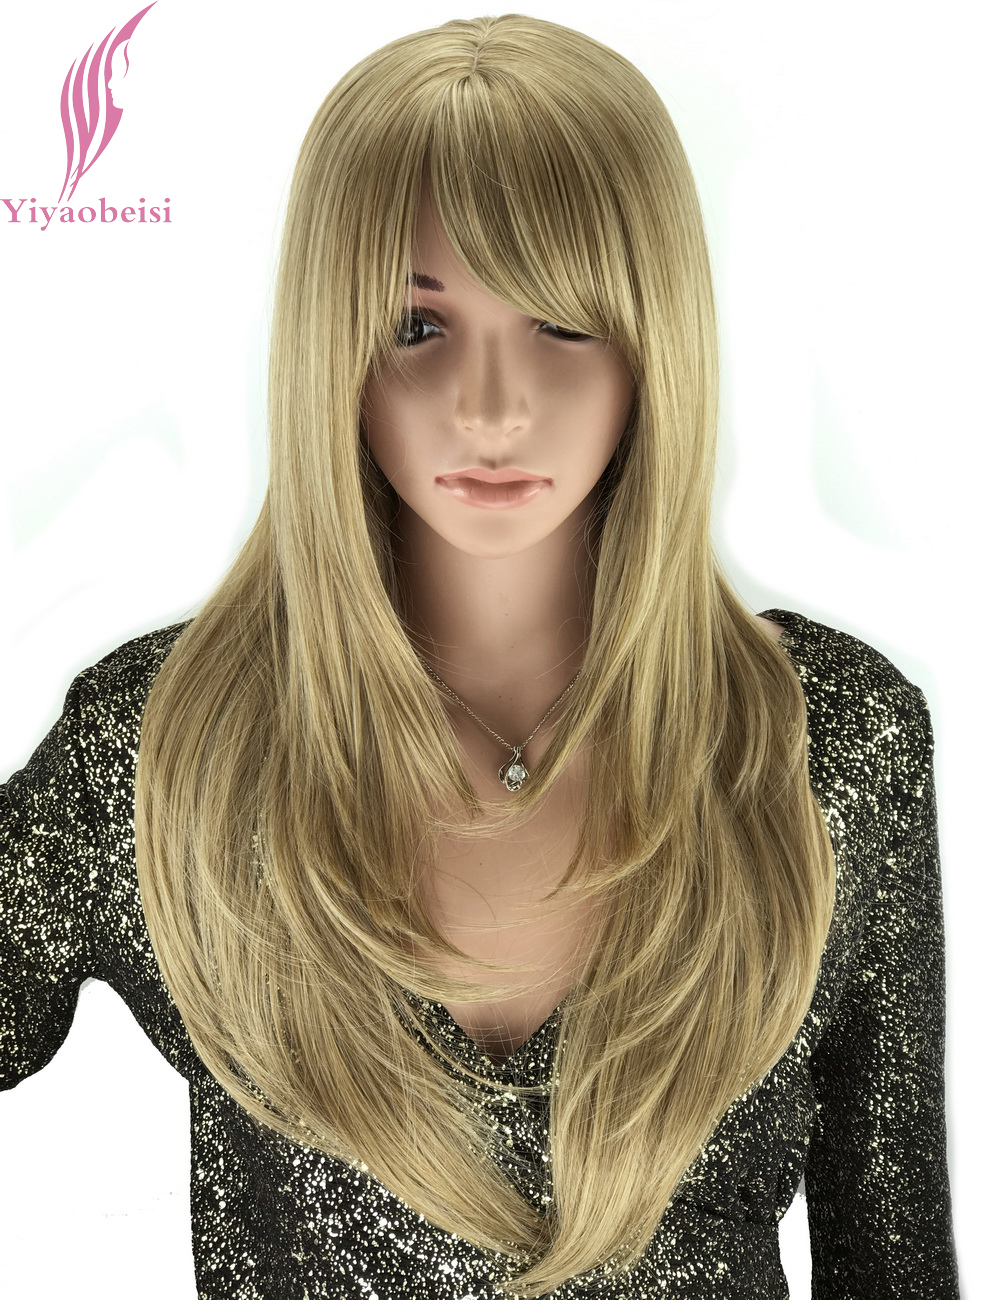 Yiyaobess 50cm European Natural Hairstyles With Bangs Heat Resistant Synthetic Hair Long Straight Blonde Wig For